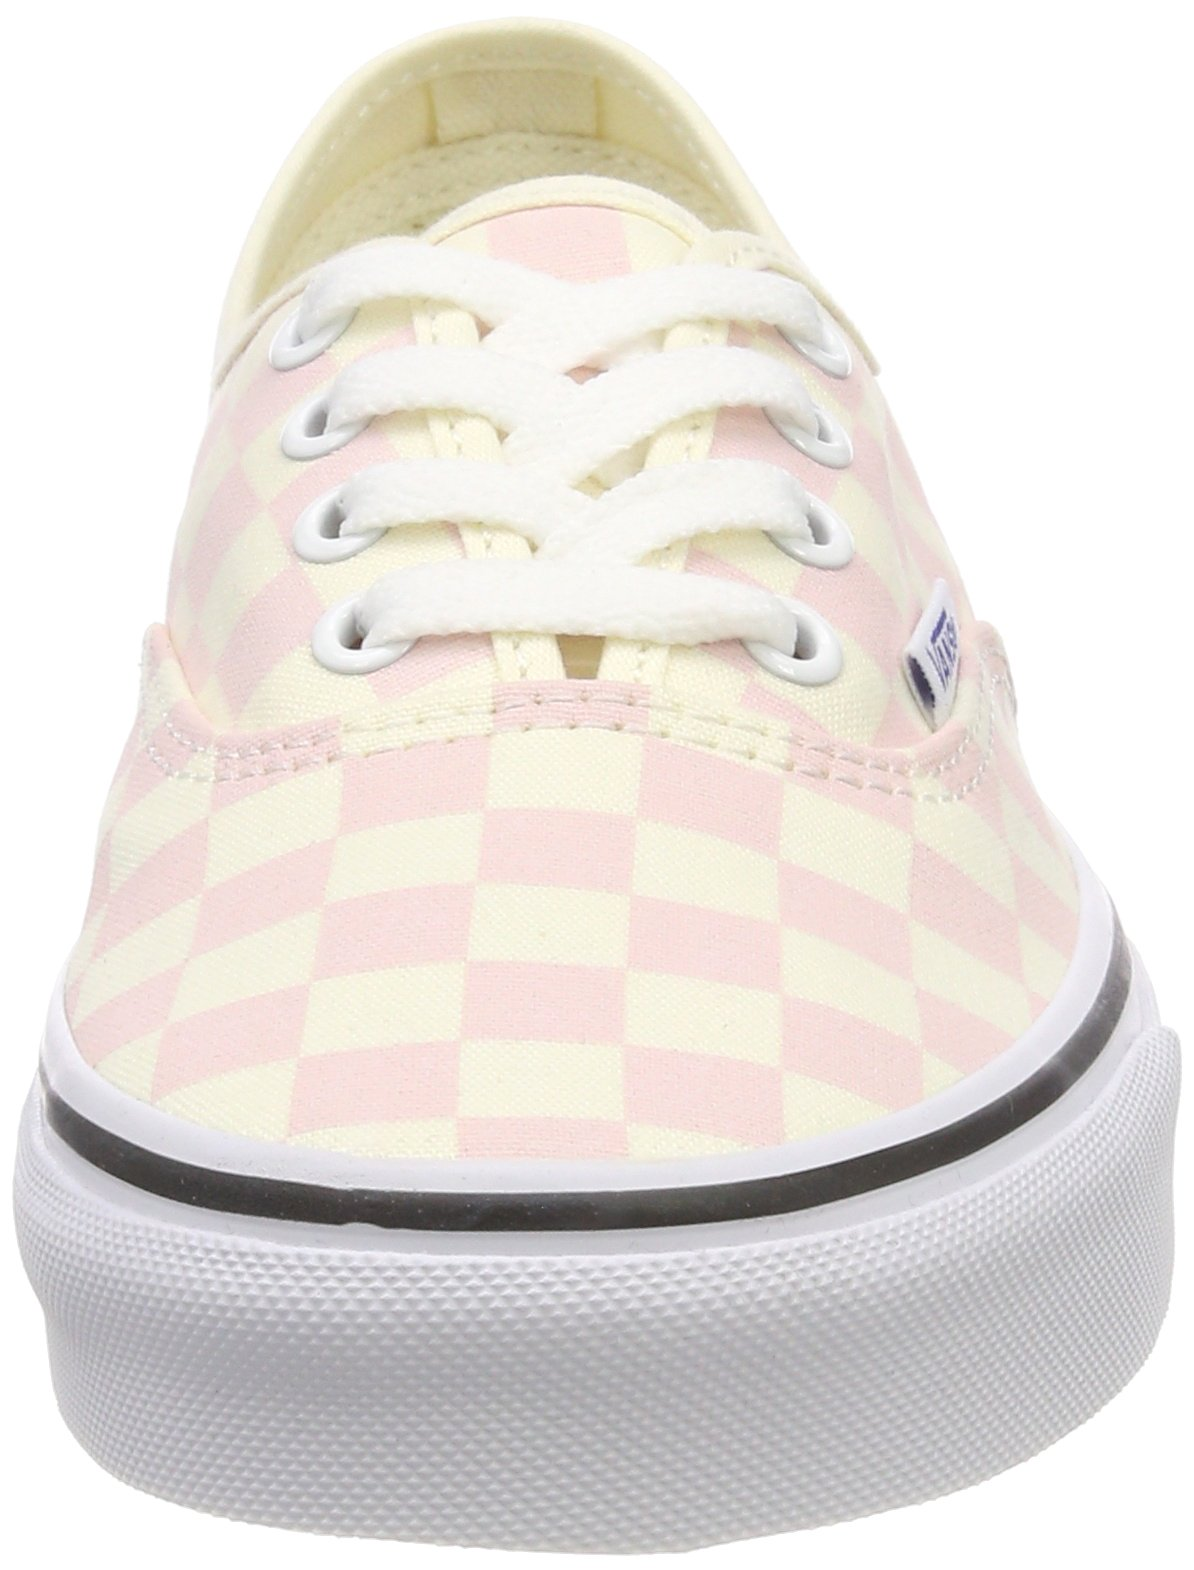 Vans Women's Authentic Trainers, Pink (Checkerboard) Chalk Pink/Classic White Q8l, 5.5 UK 38.5 EU by Vans (Image #4)